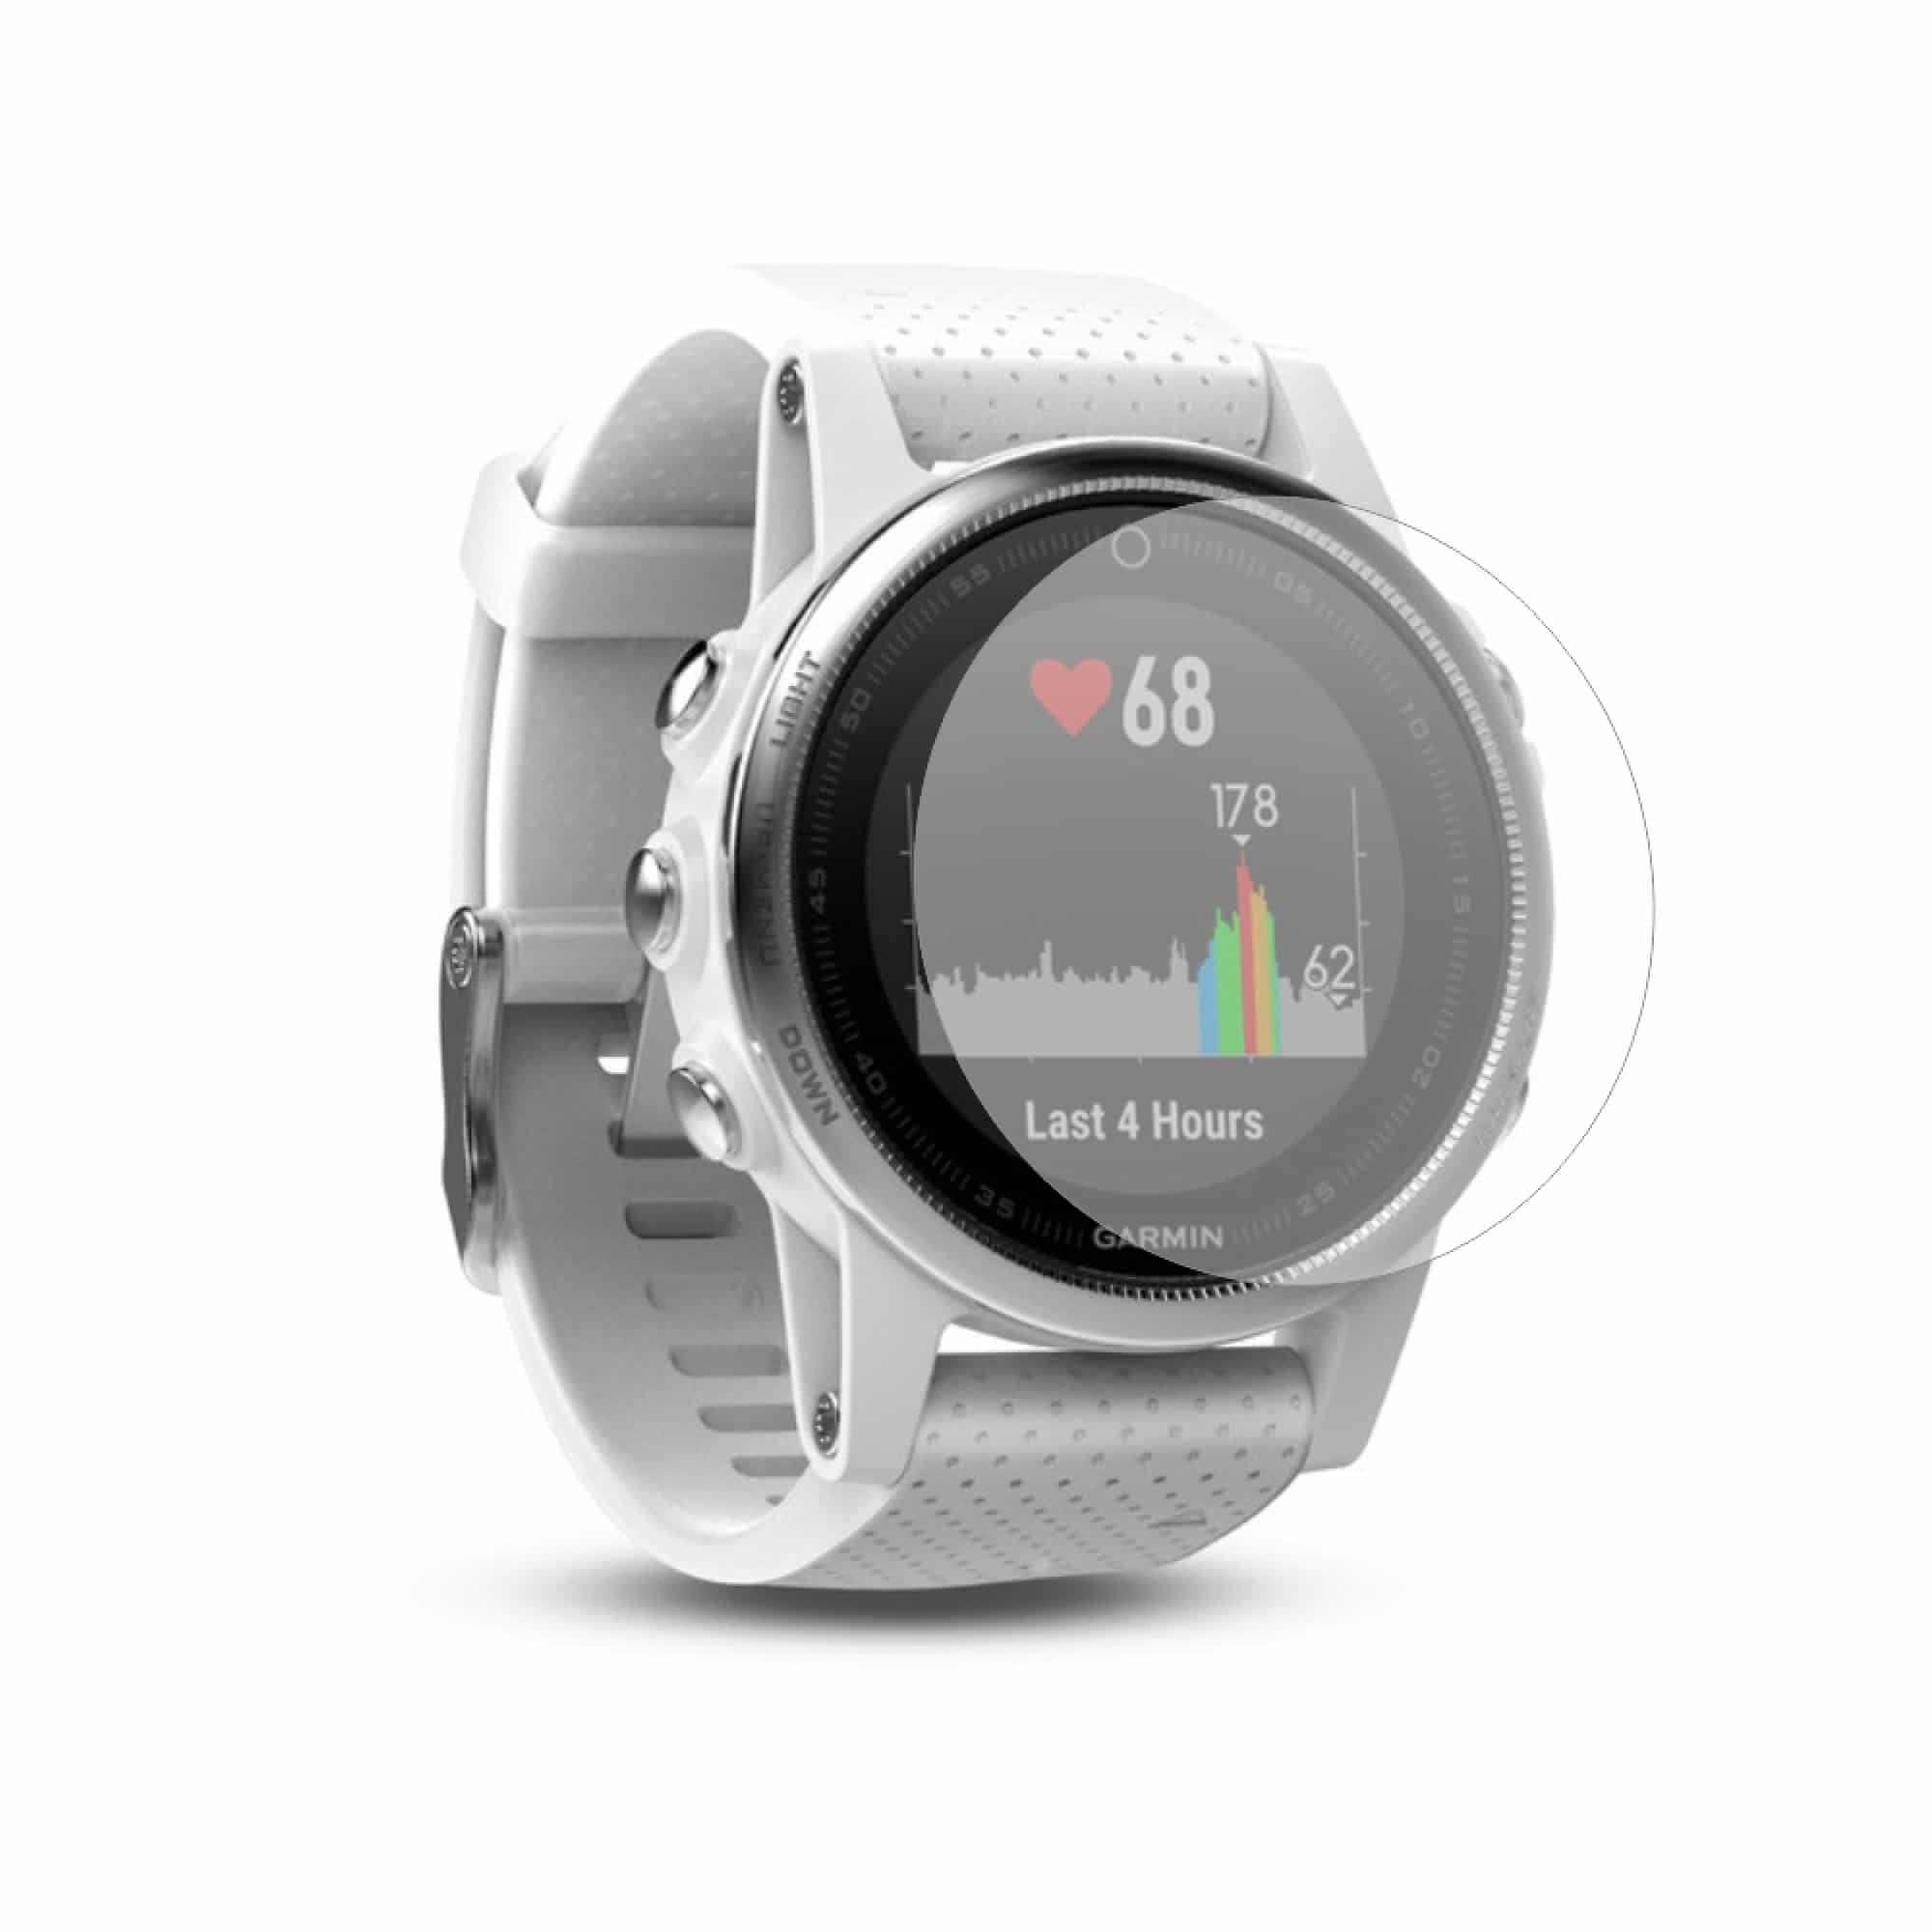 Folie de protectie Antireflex Mata Smart Protection Garmin Fenix 5s - 2 folii pentru display imagine